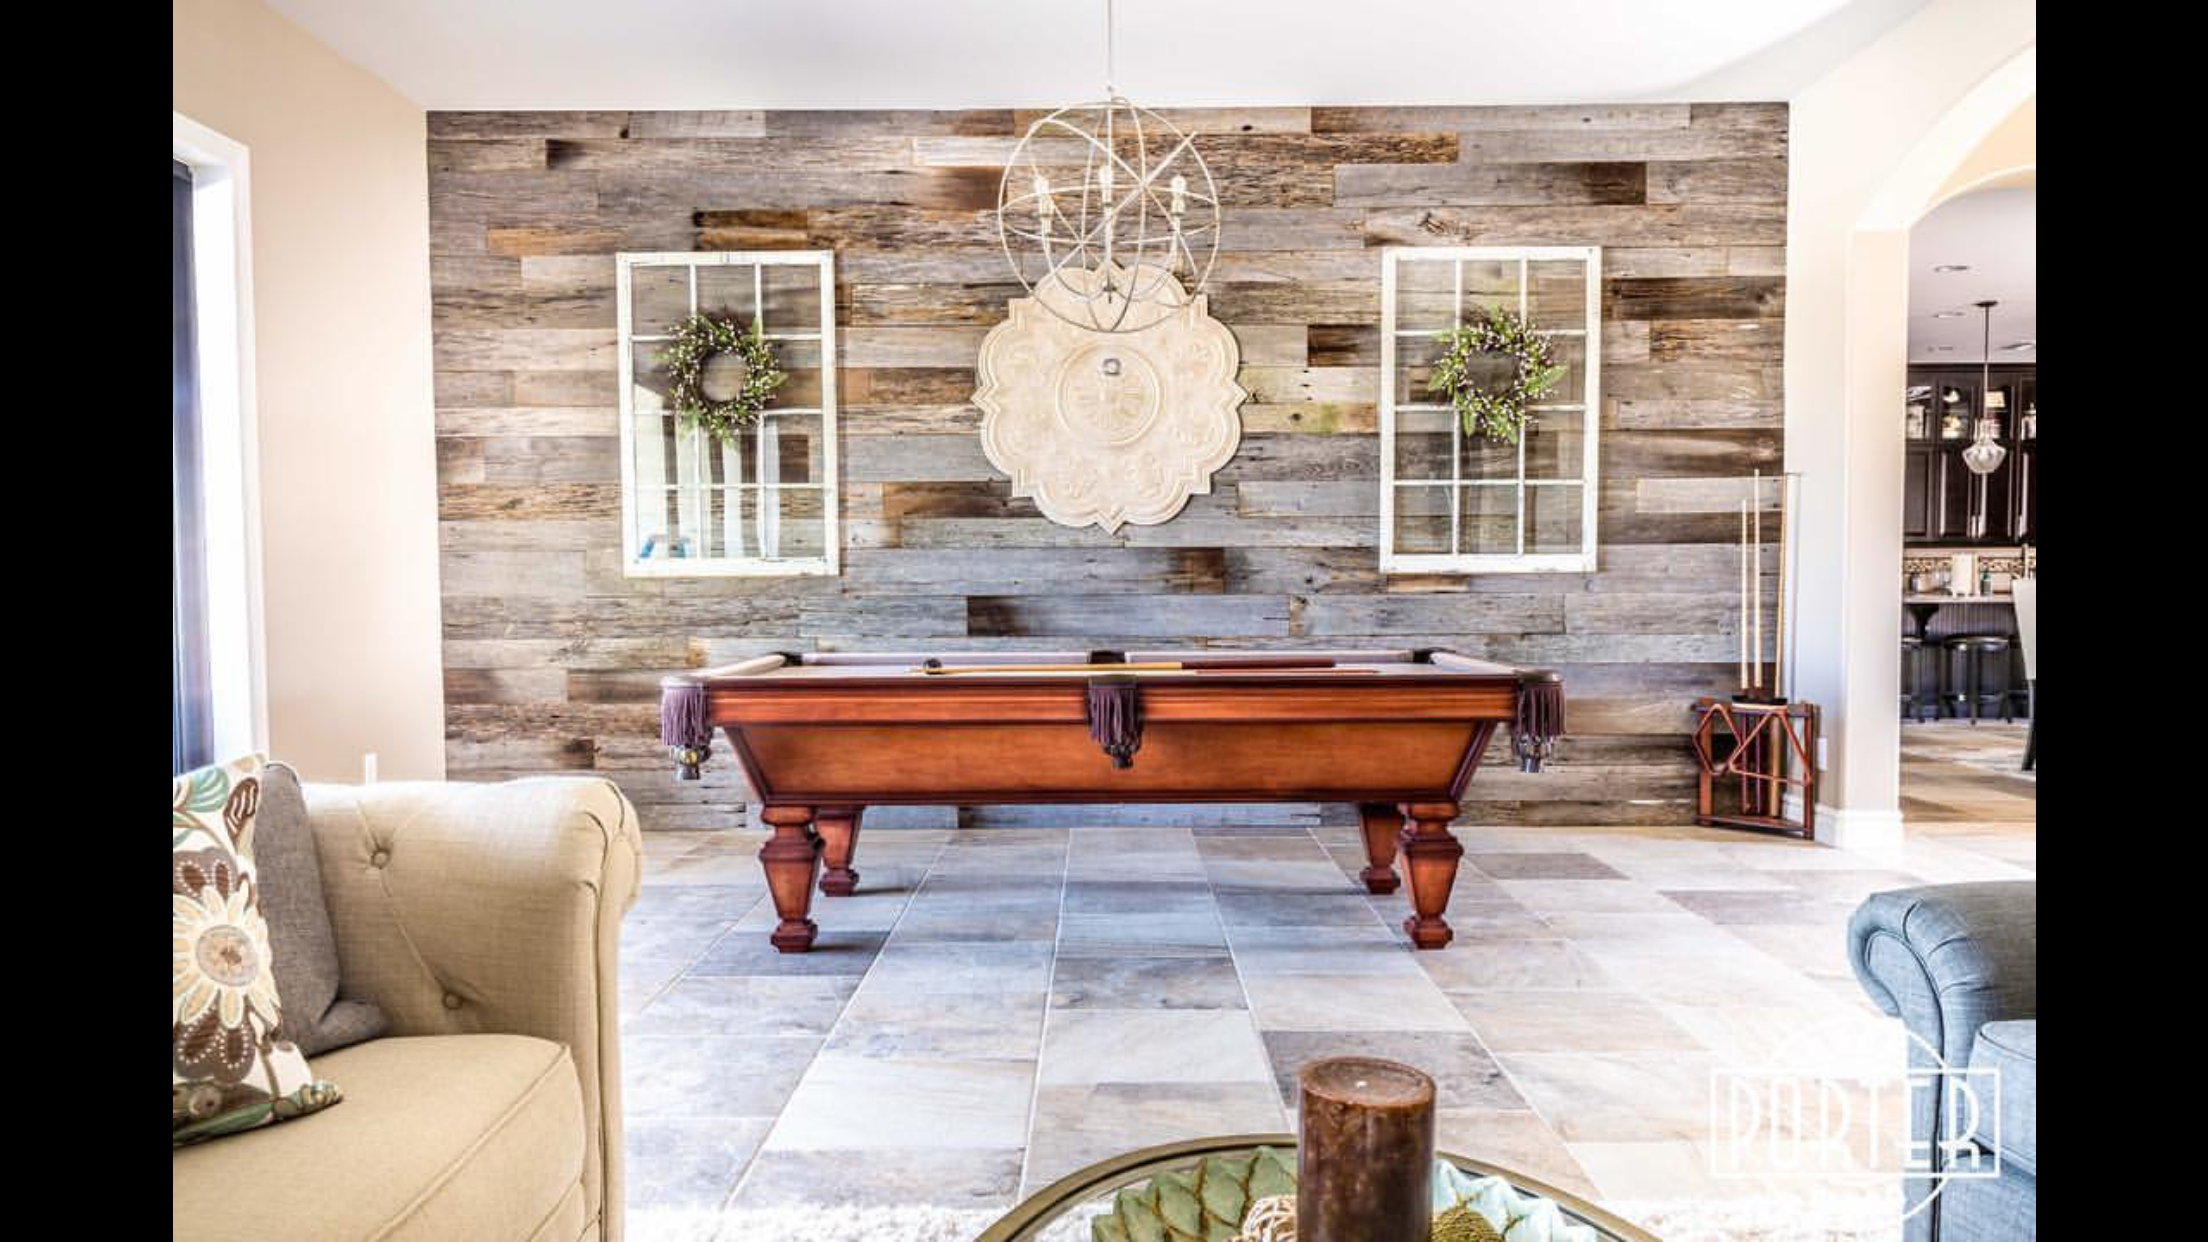 Pin By Aubrey Odom On For The Home With Images Wooden Accent Wall Barn Wood Rustic Dining Table